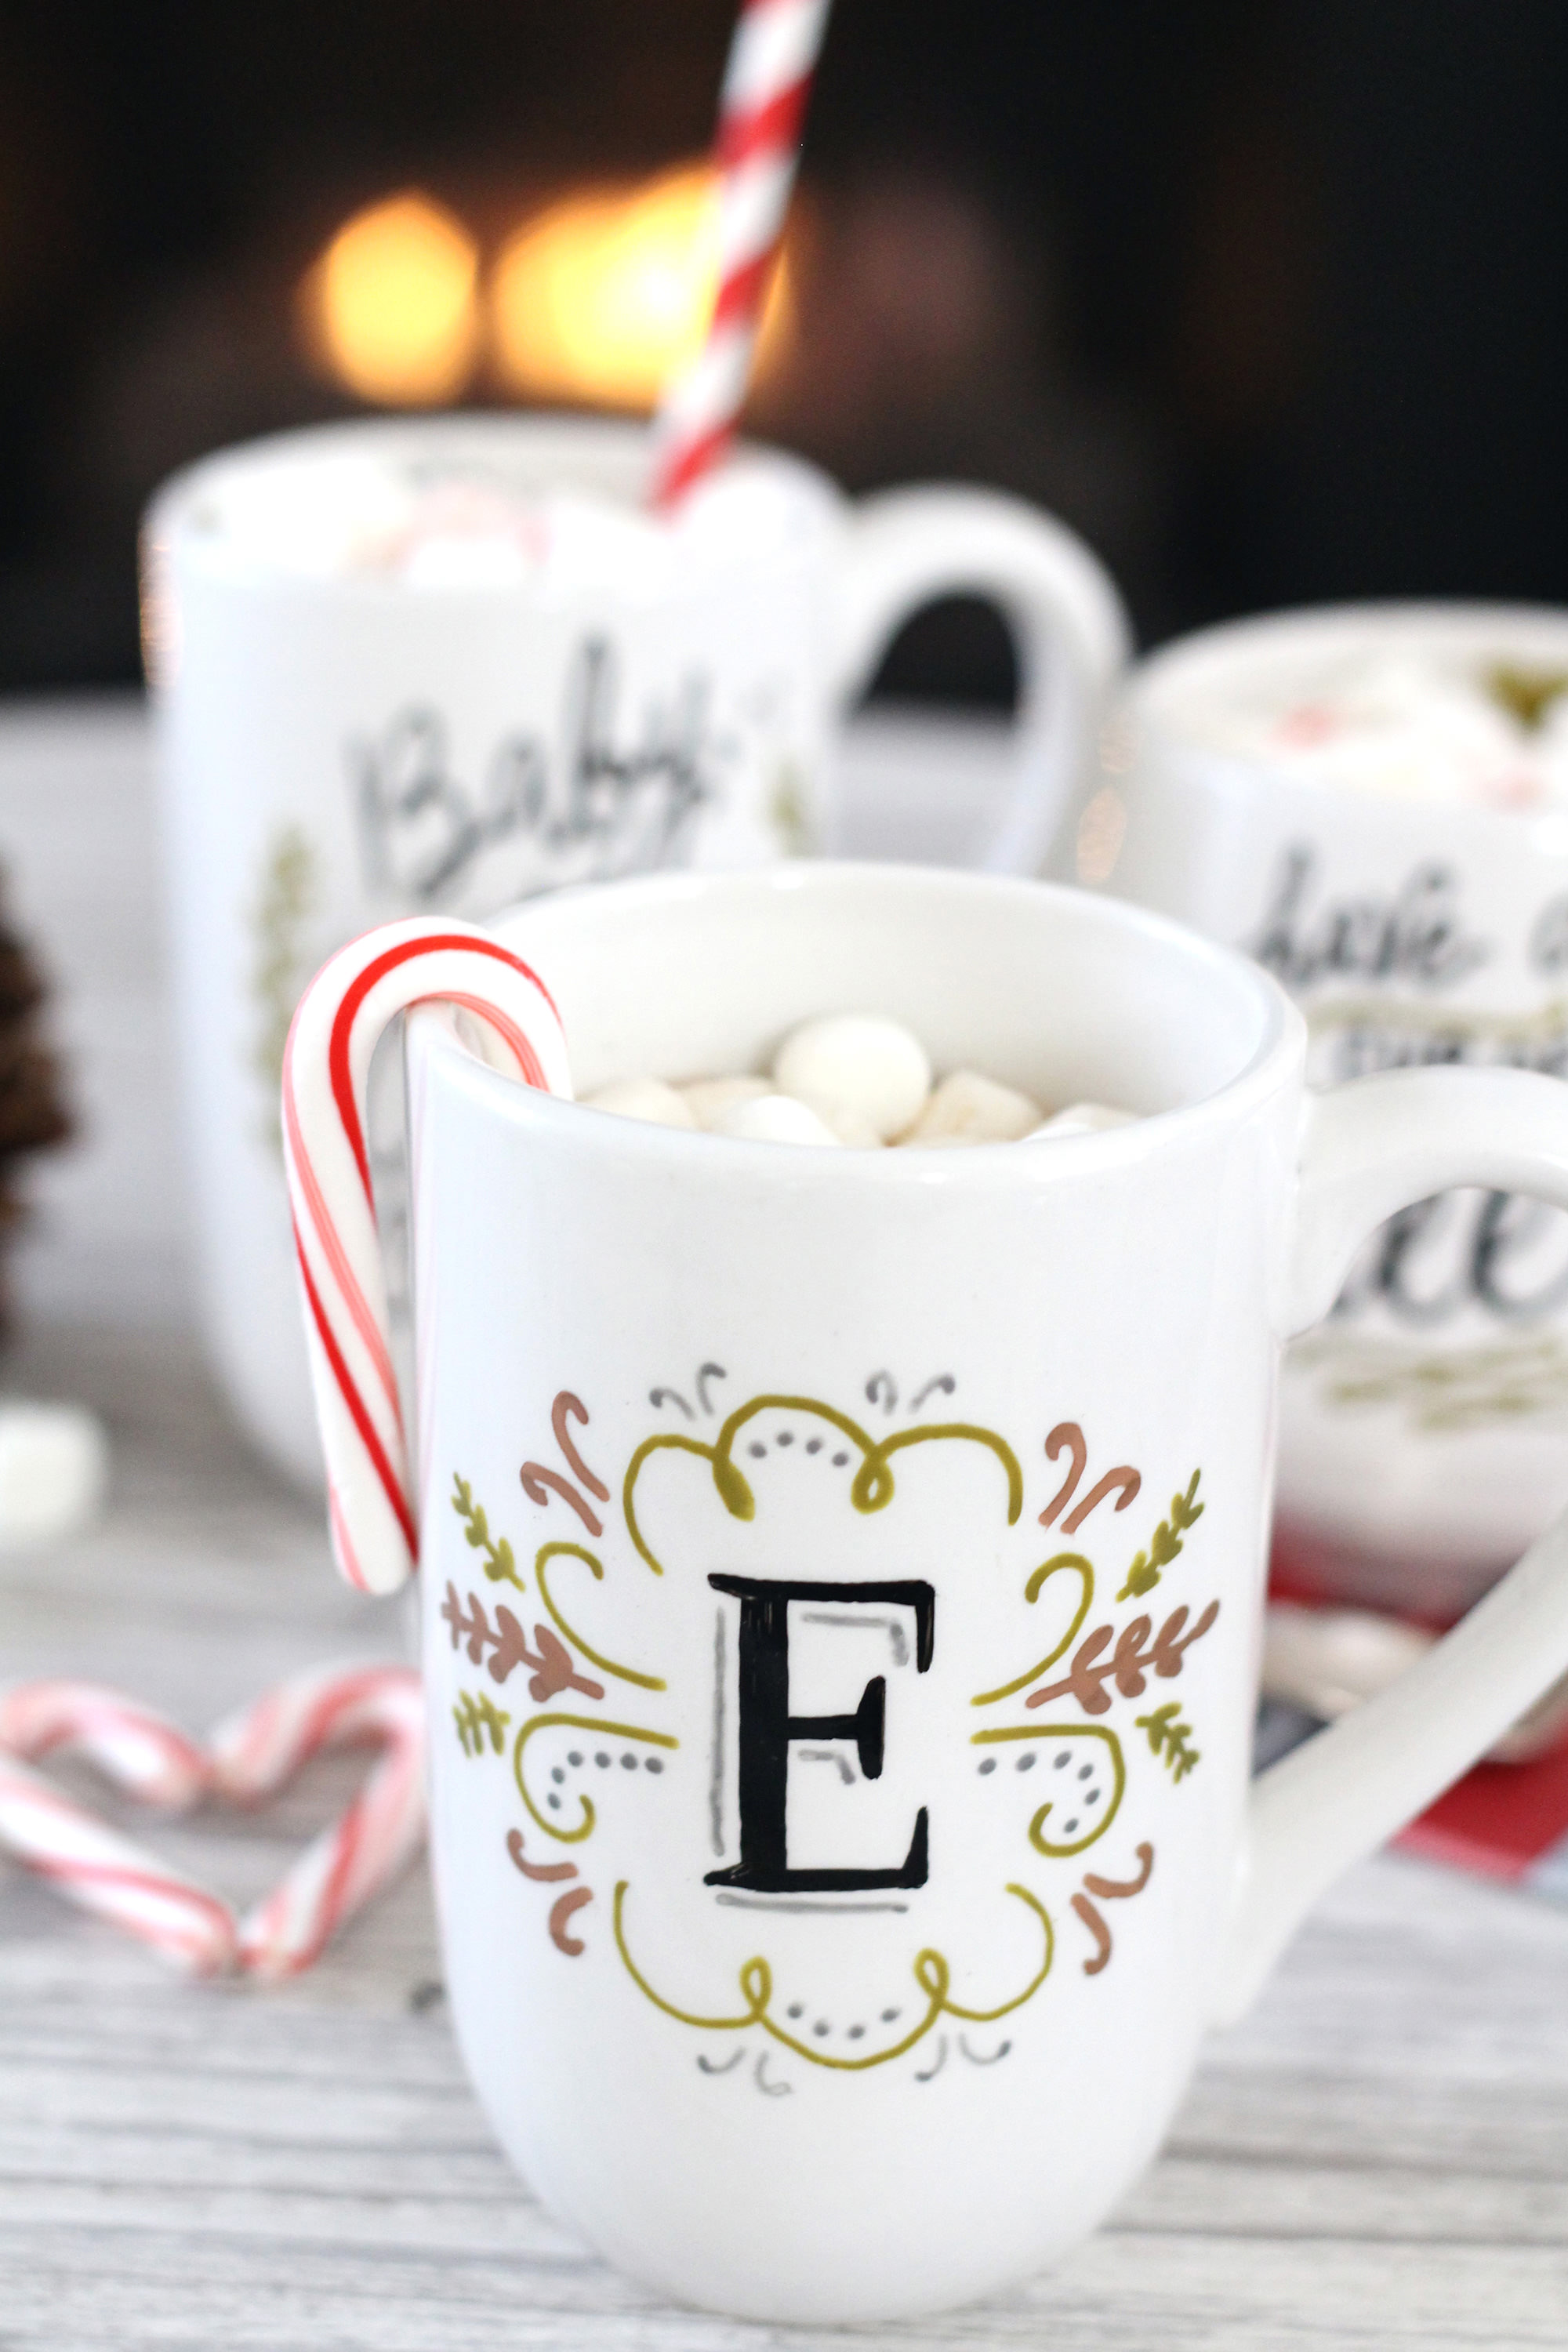 Diy mug gifts using paintedbyme bake at home ceramics for Diy monogram gifts